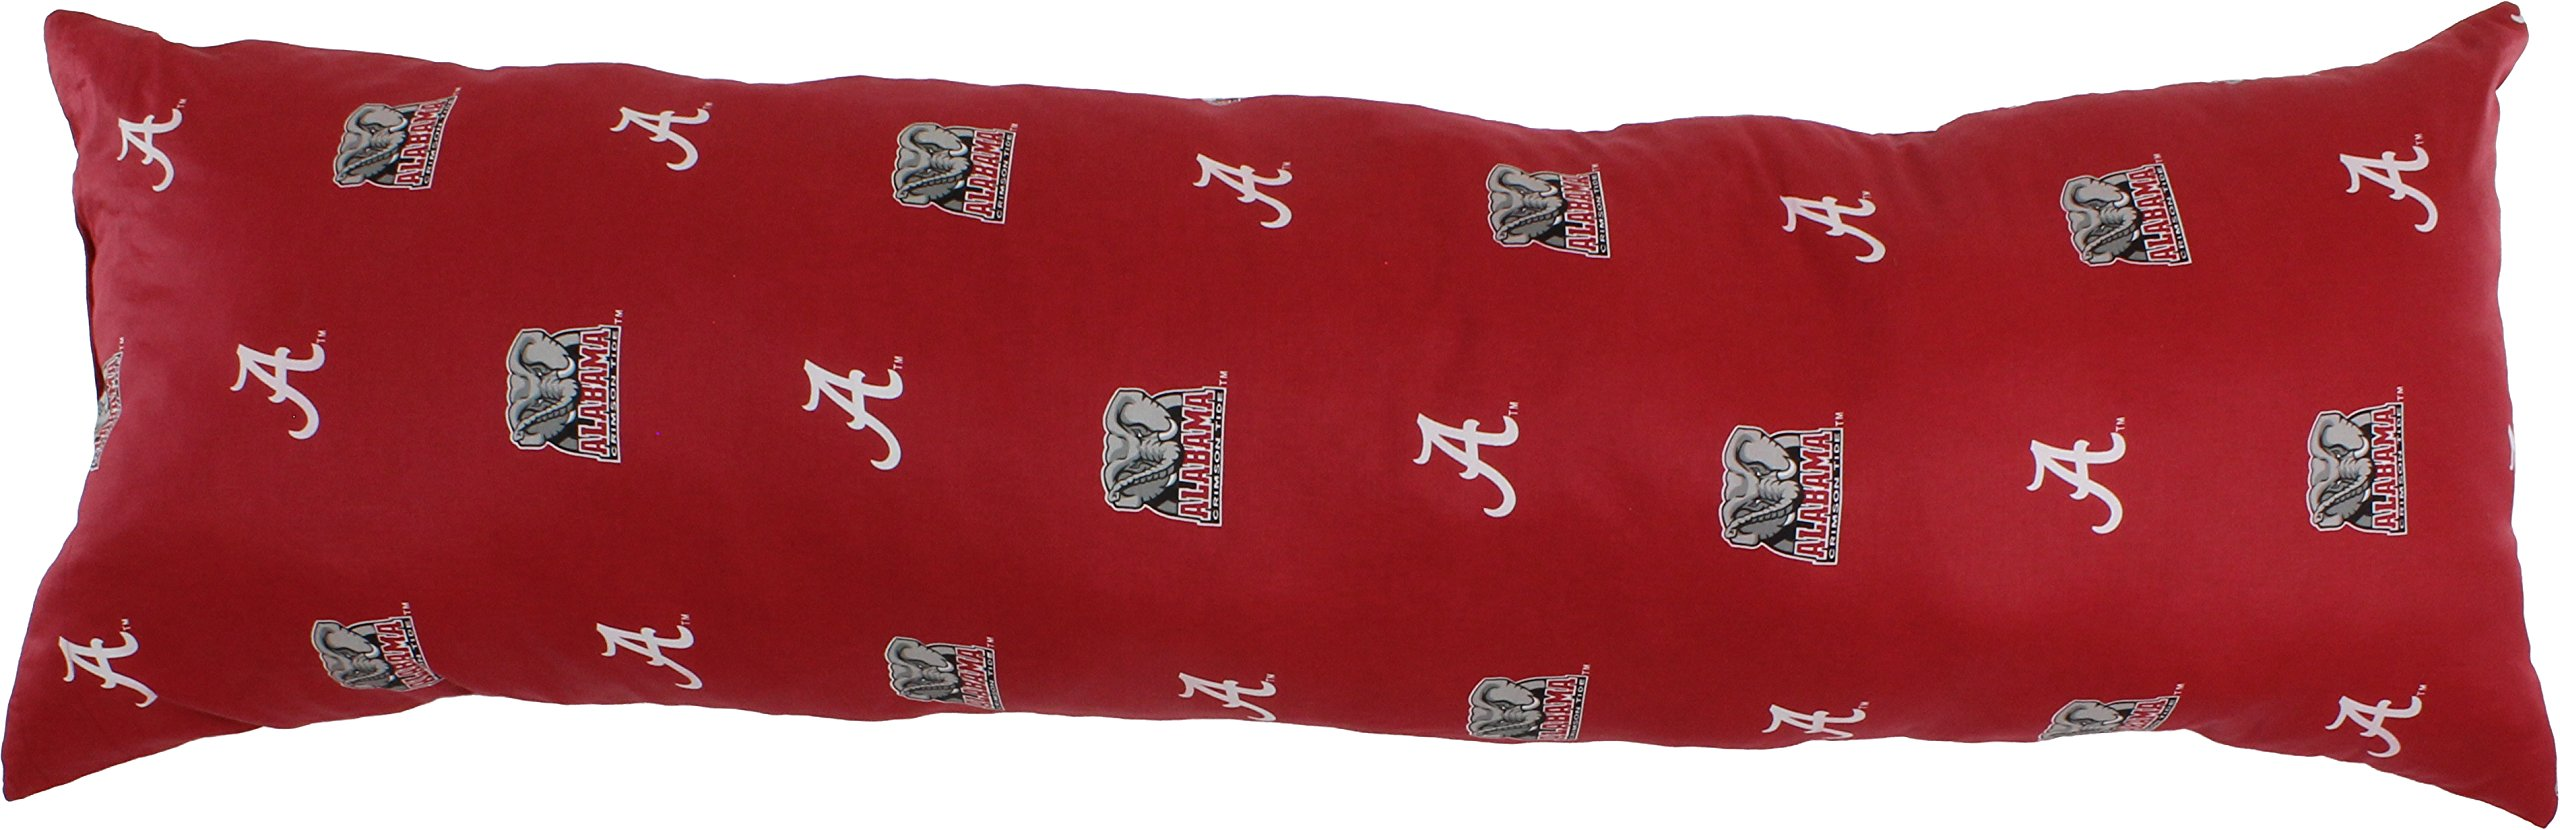 College Covers Alabama Crimson Tide Printed Body Pillow, 20'' x 60''